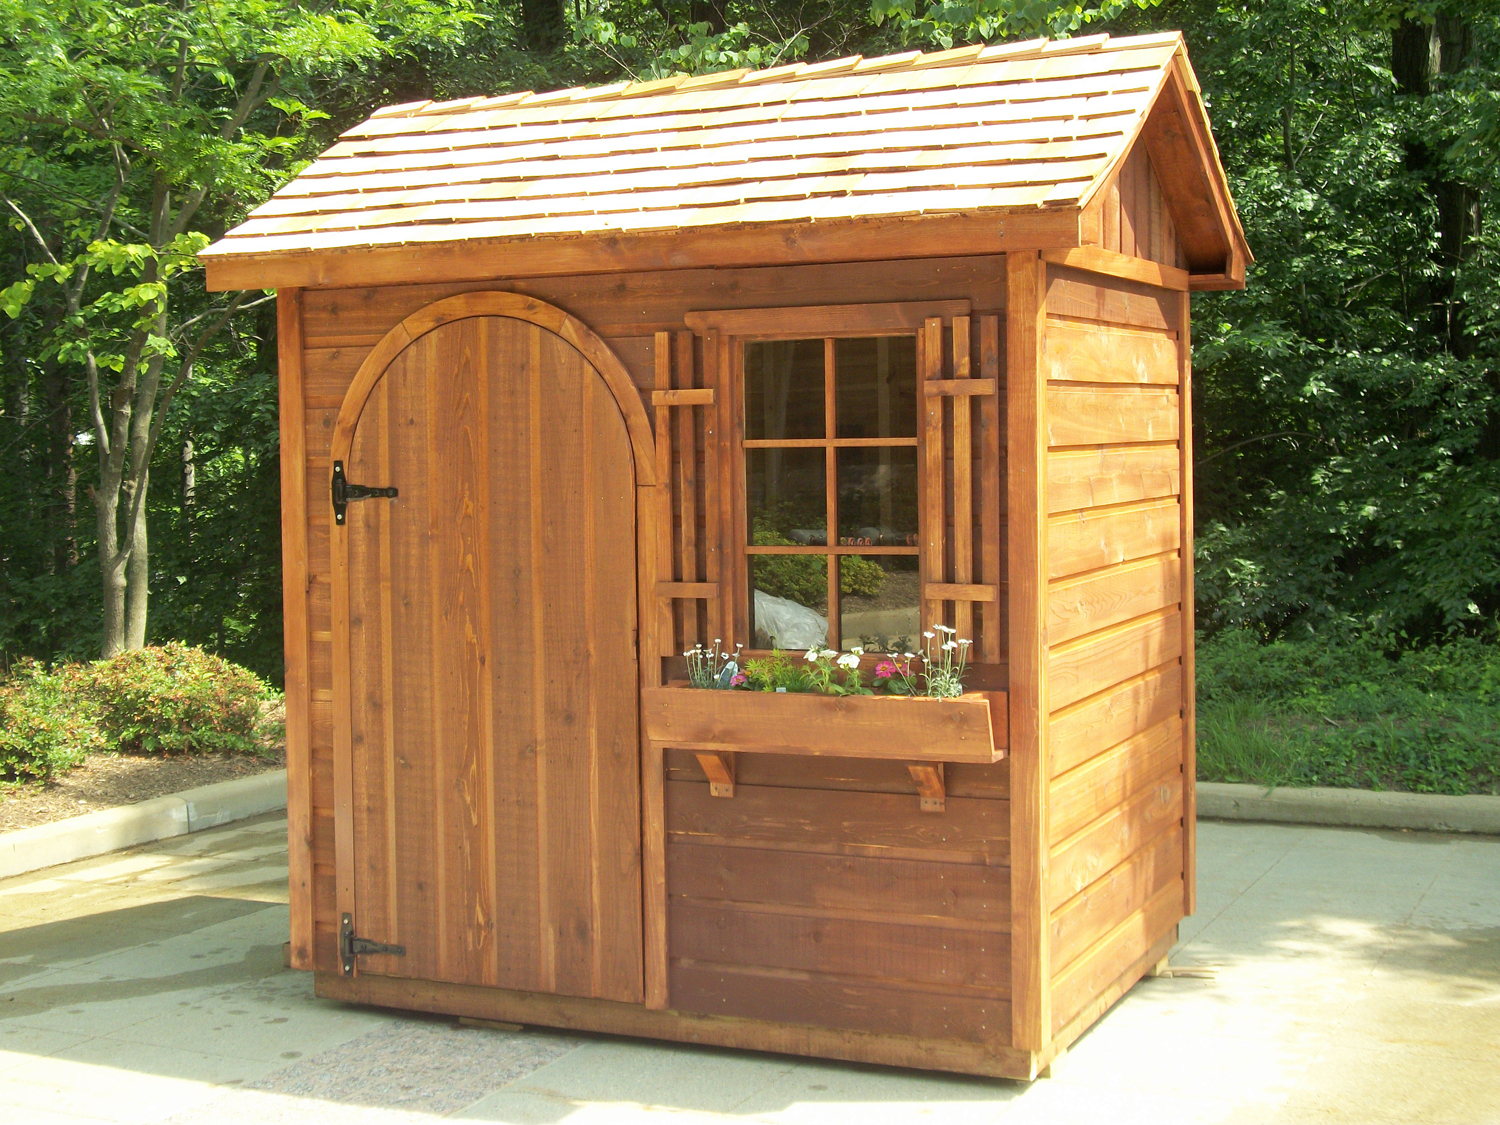 19.SIMPHOME.COM small wooden garden sheds shed fans